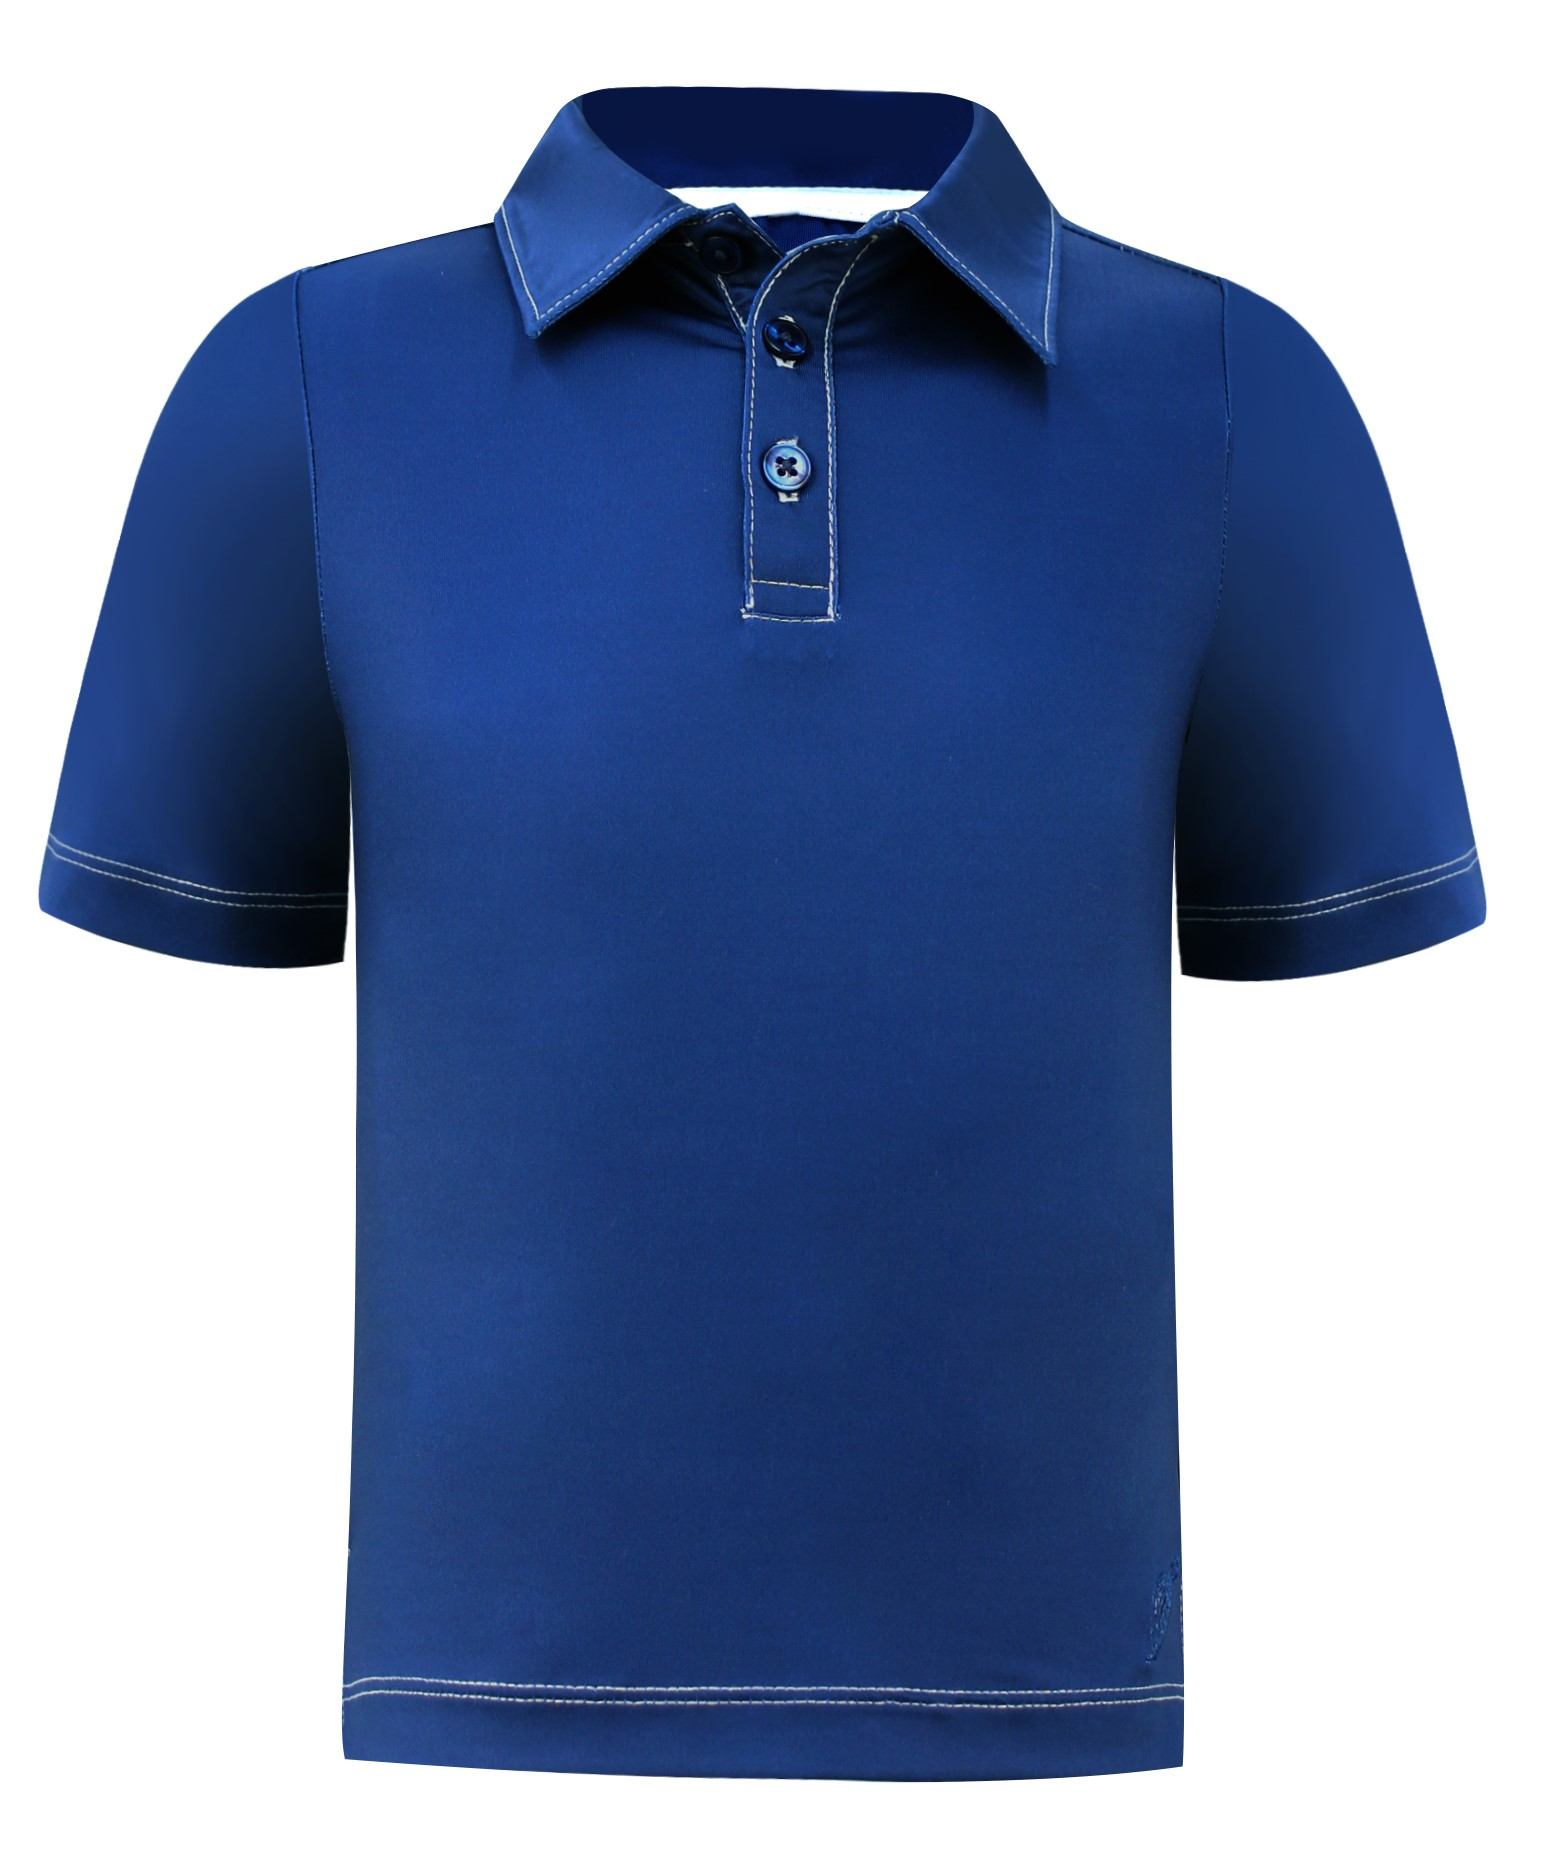 Boys Performance Polo Shirt - Navy